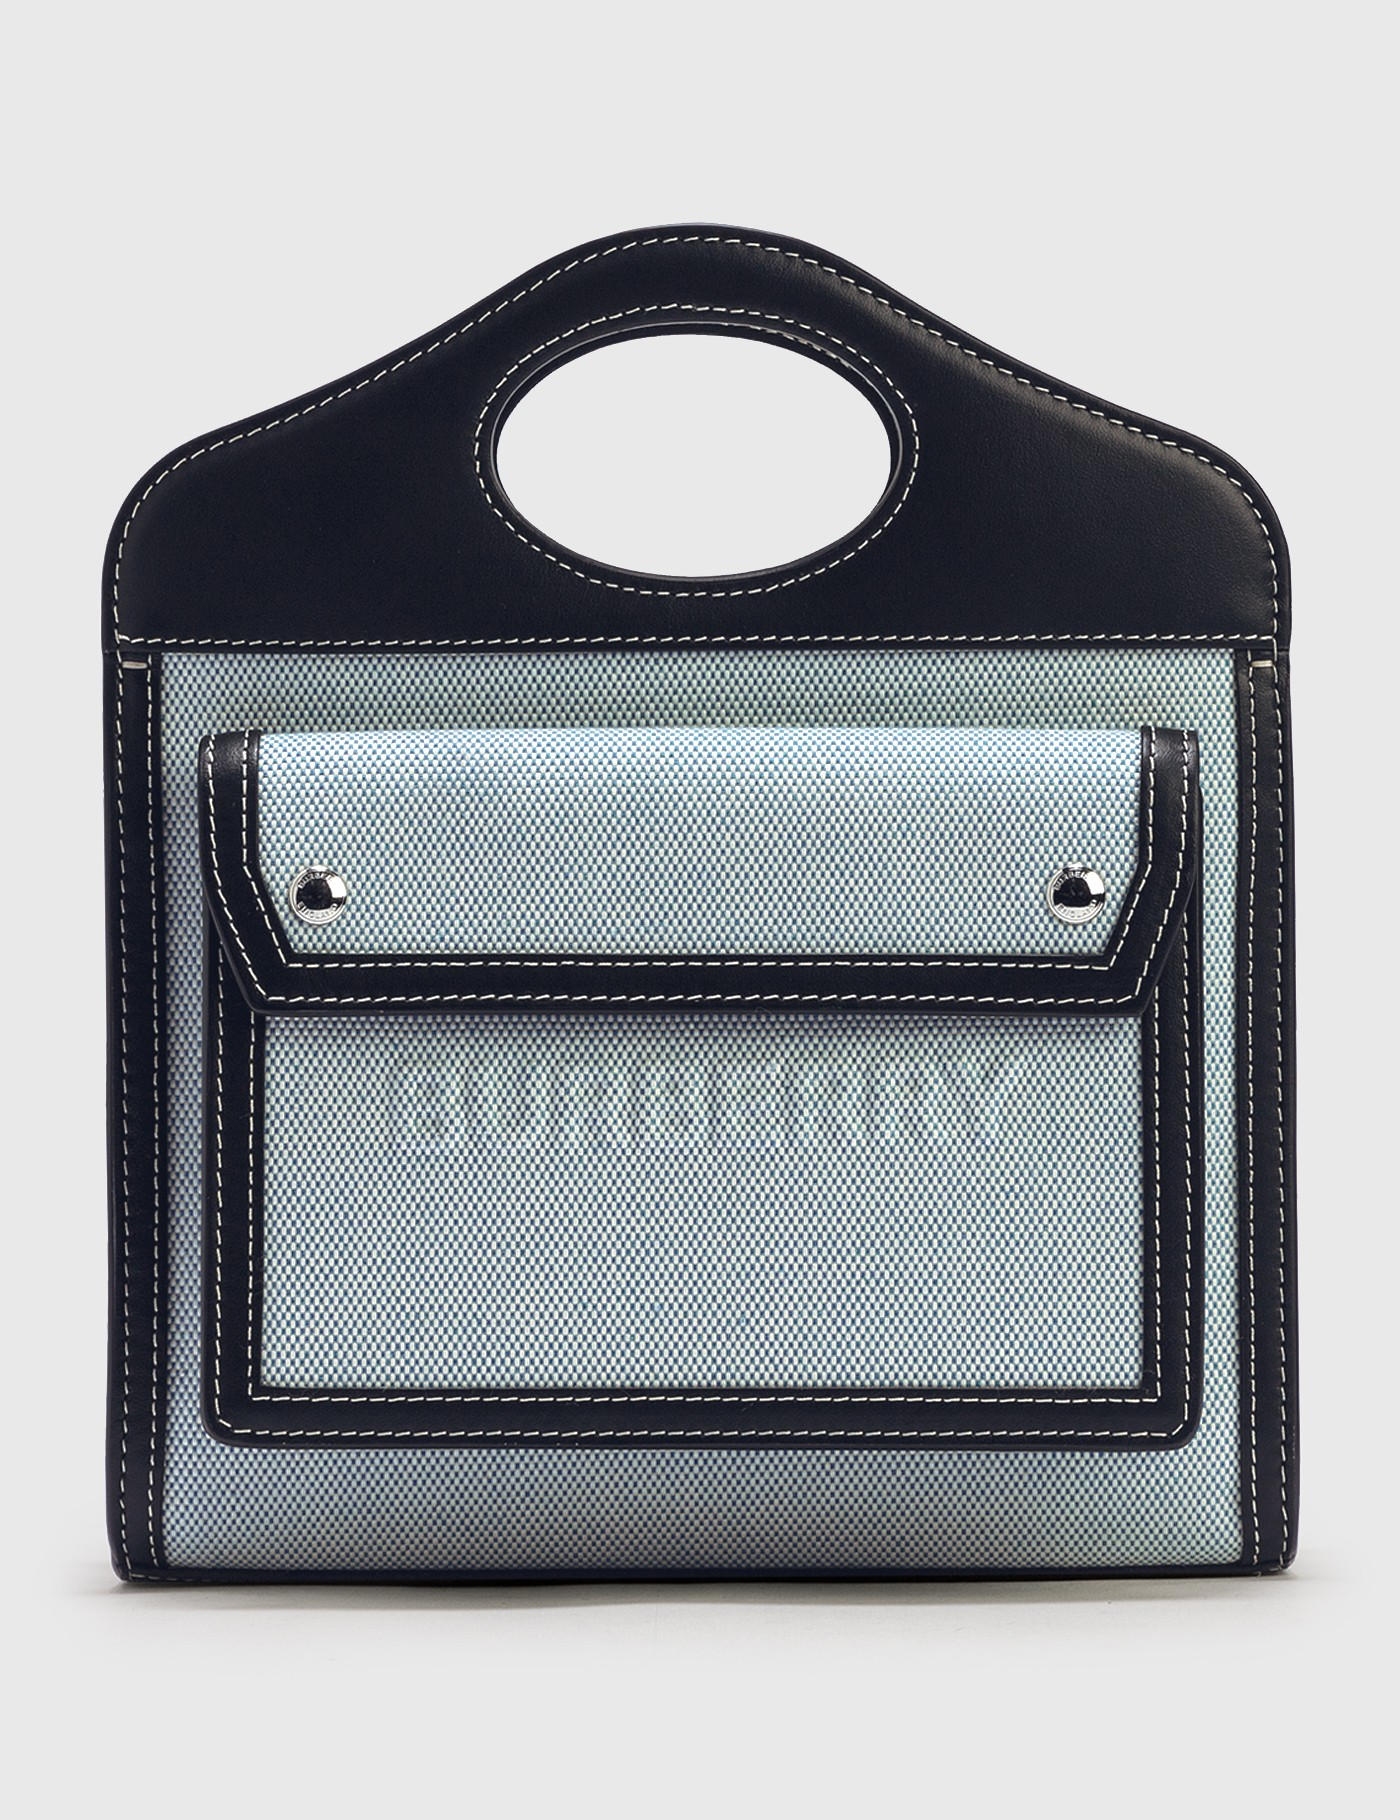 Burberry Canvases MINI TWO-TONE CANVAS AND LEATHER POCKET BAG